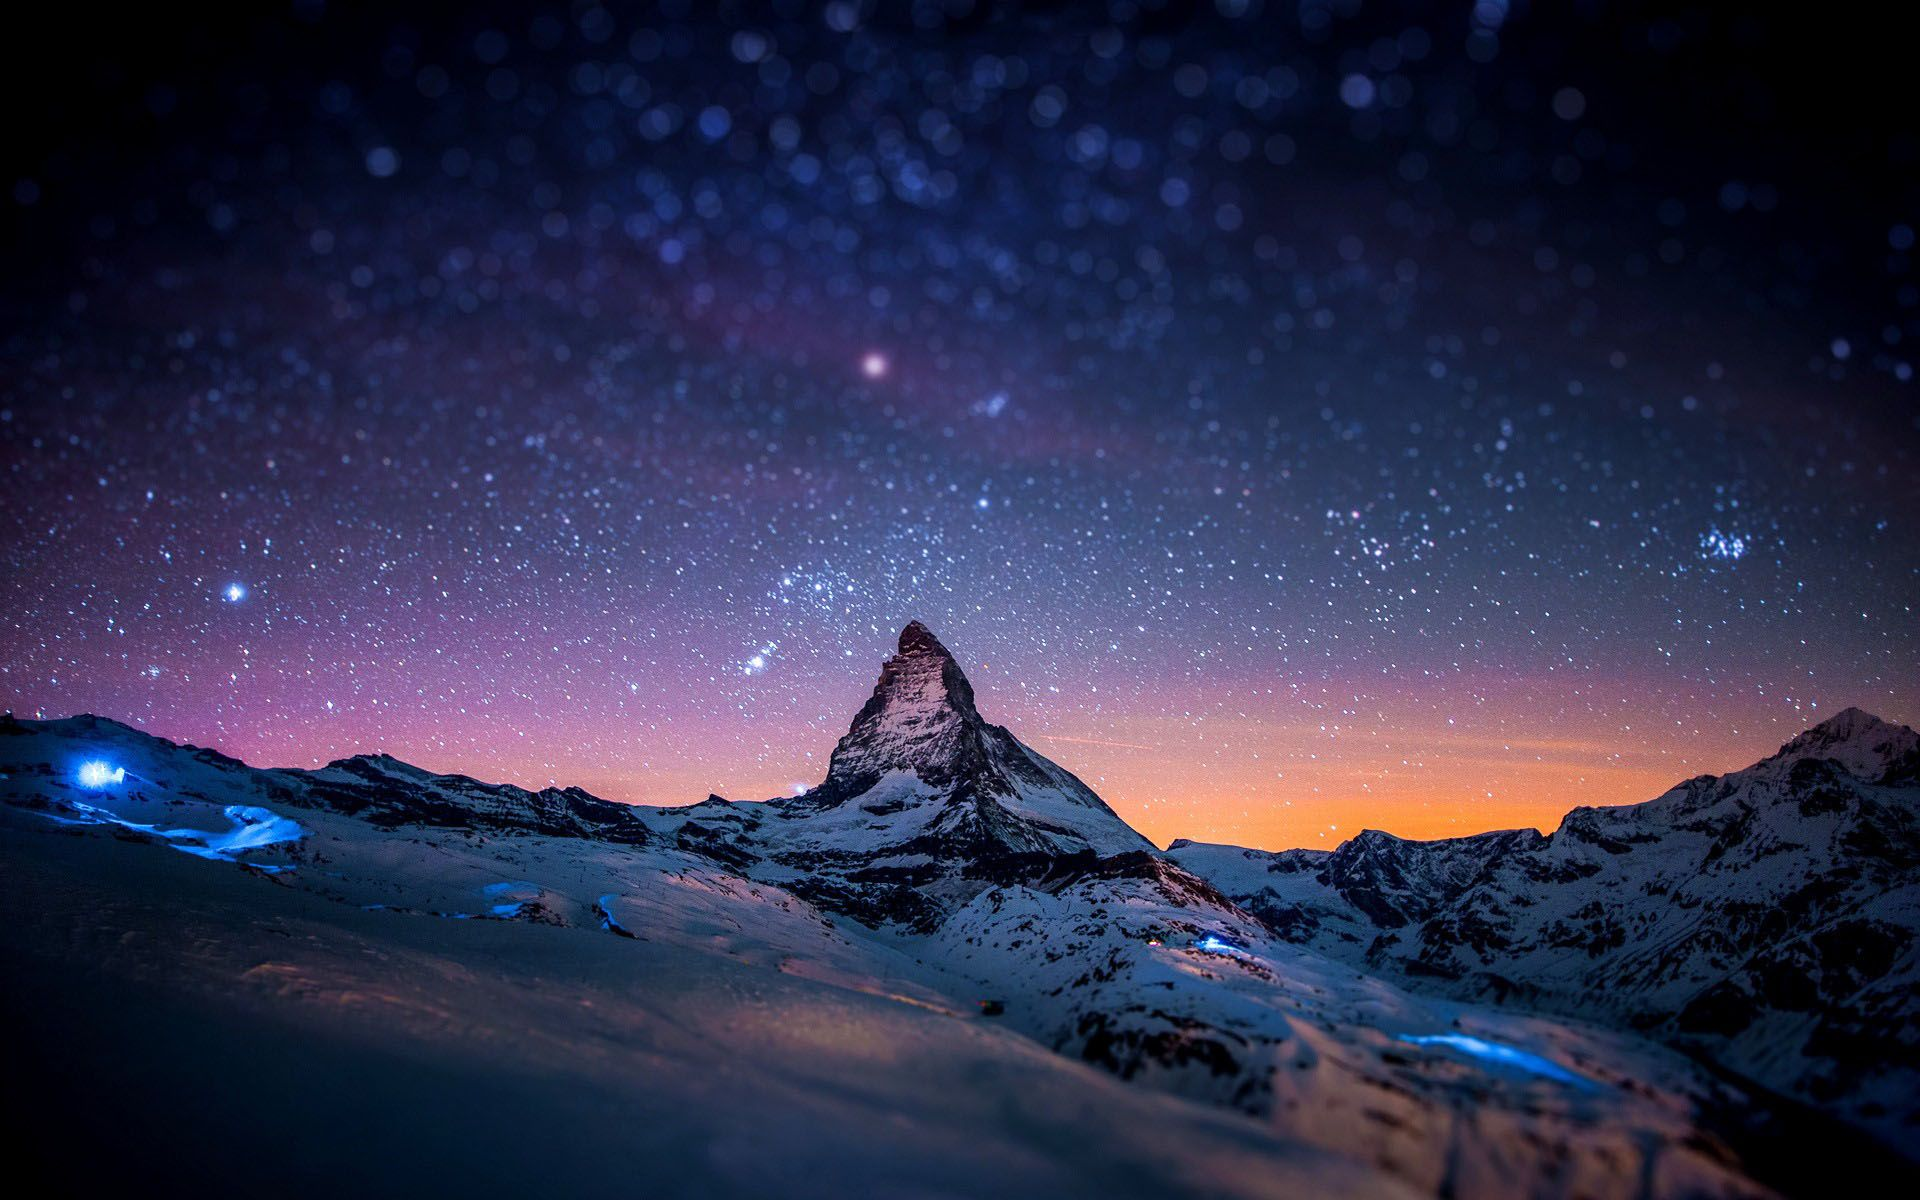 Mountain Peak In Starry Night 1920x1200 Full Hd 16 10 Earth Pictures Matterhorn Mountain Pictures Of The Week